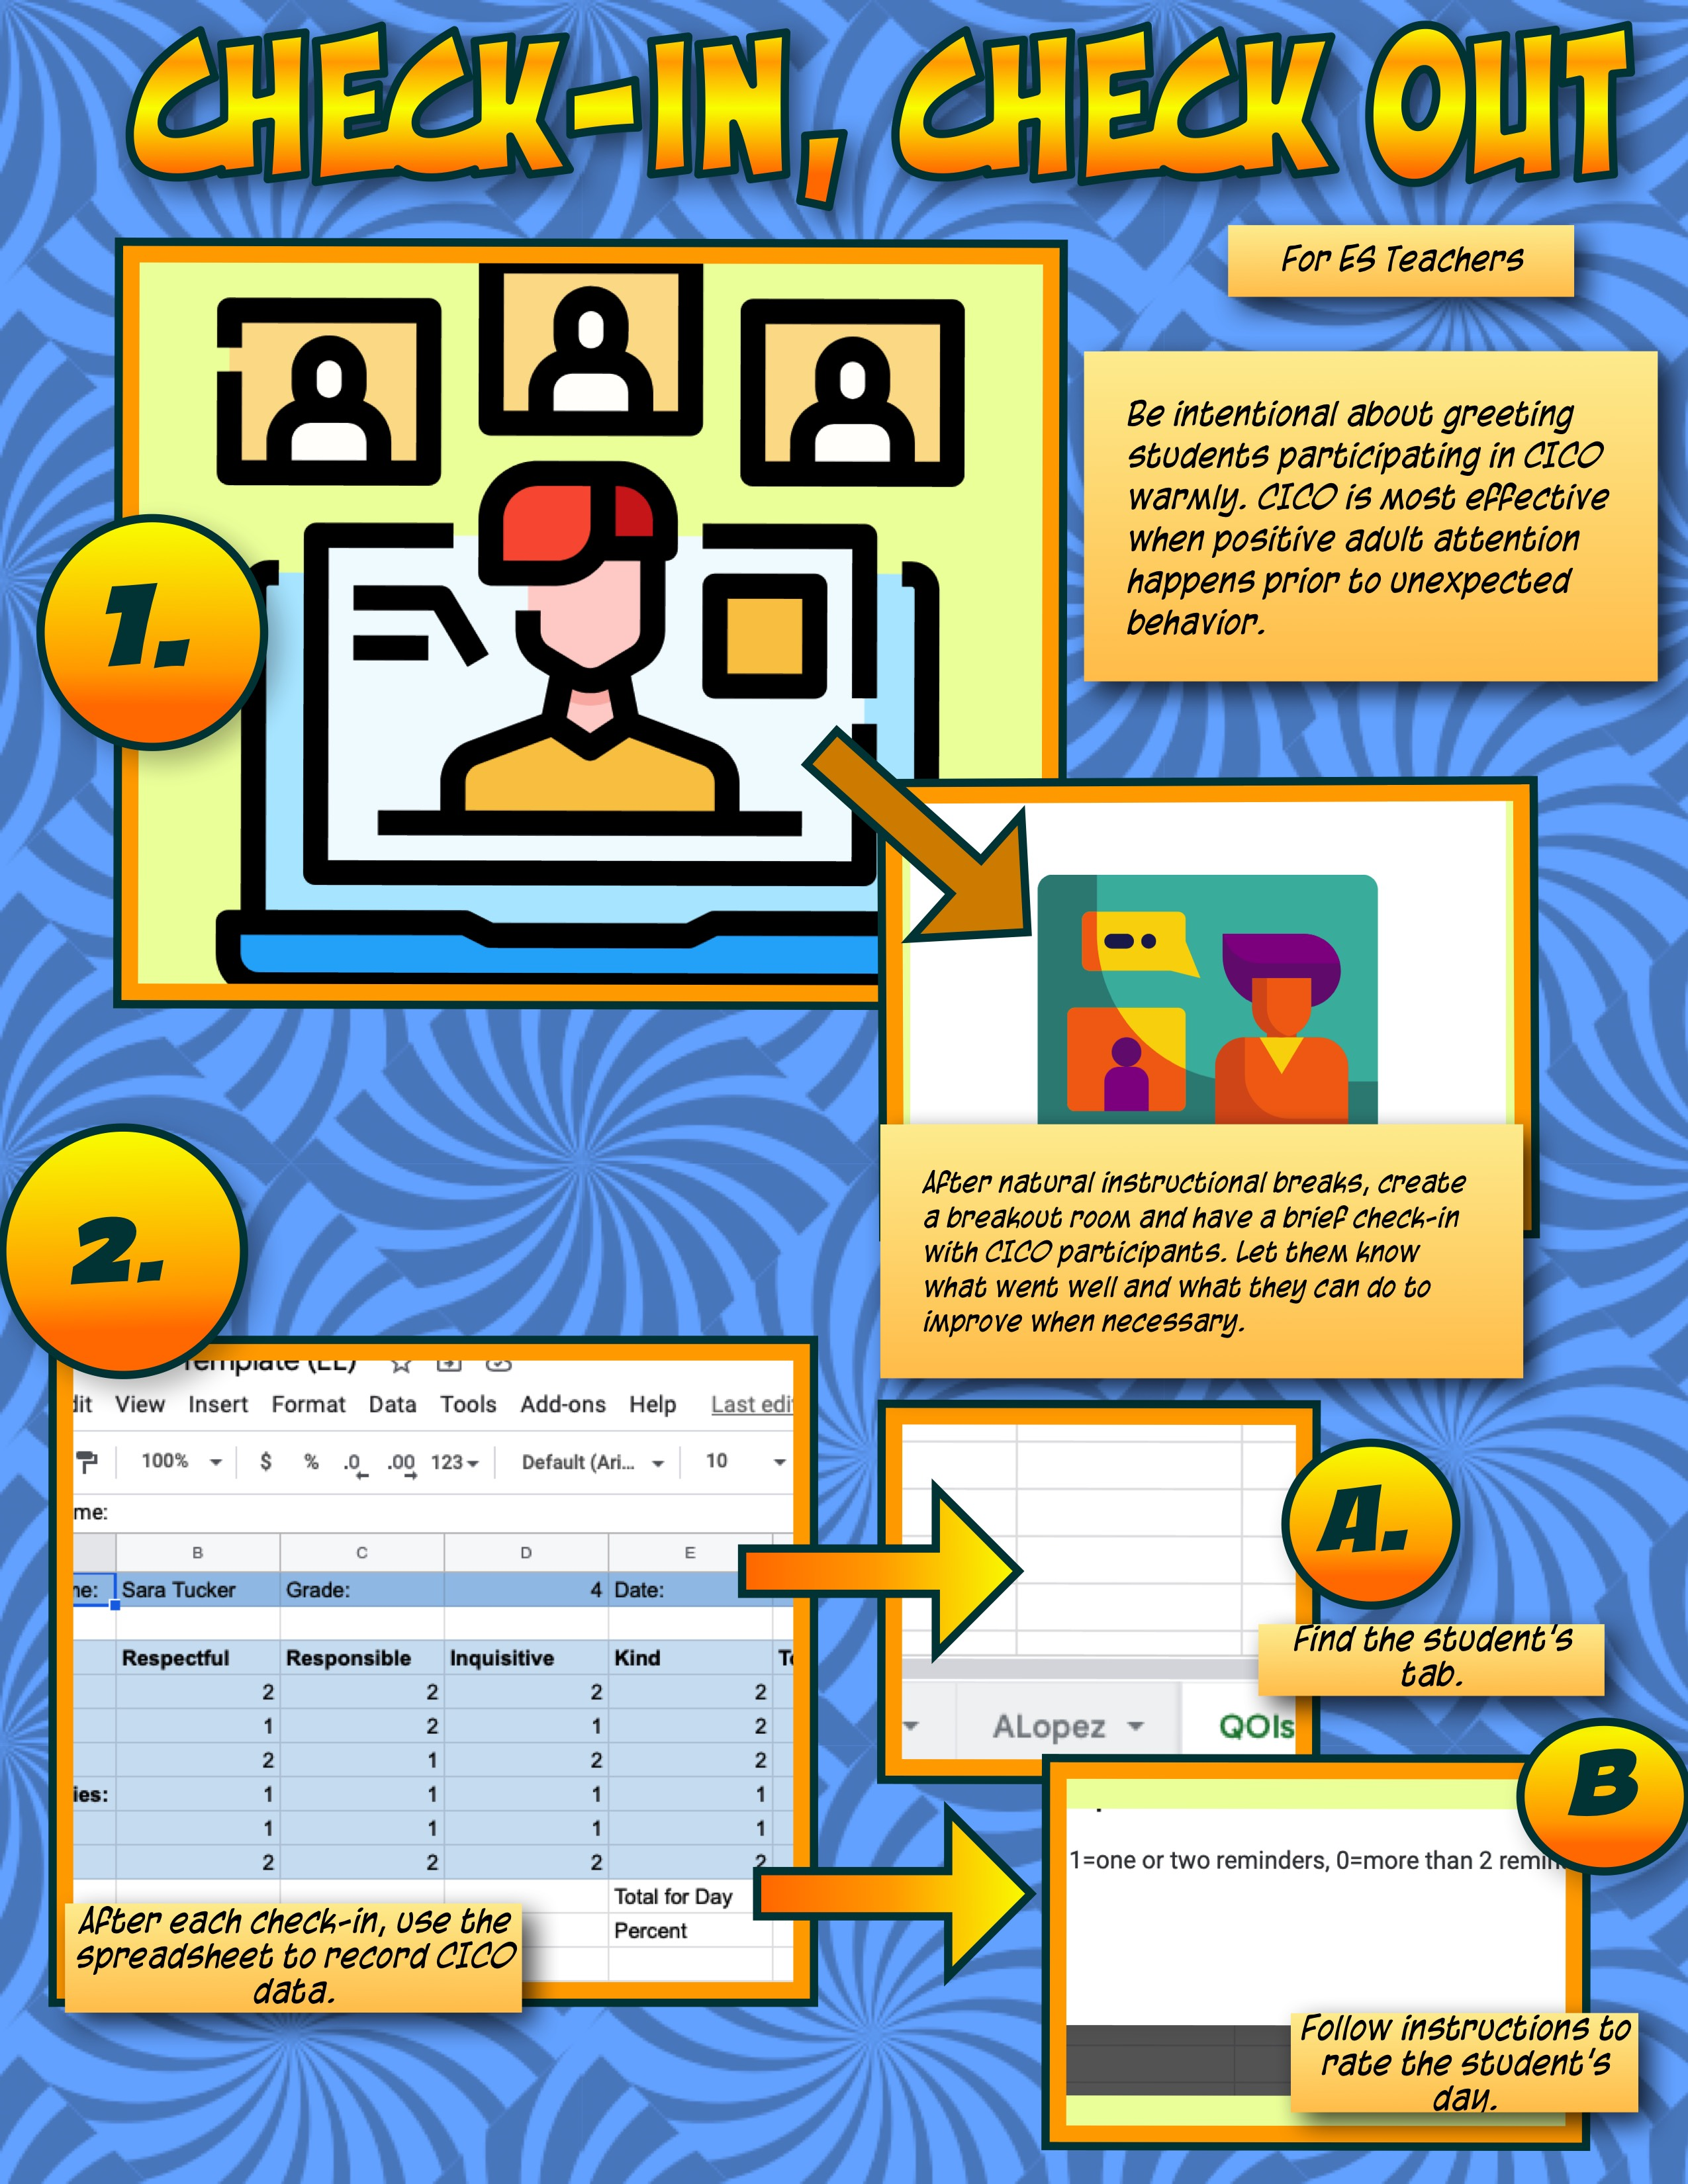 A series of numbered boxes explains the steps of check-in / check-out, a powerful Tier 2 PBIS intervention.